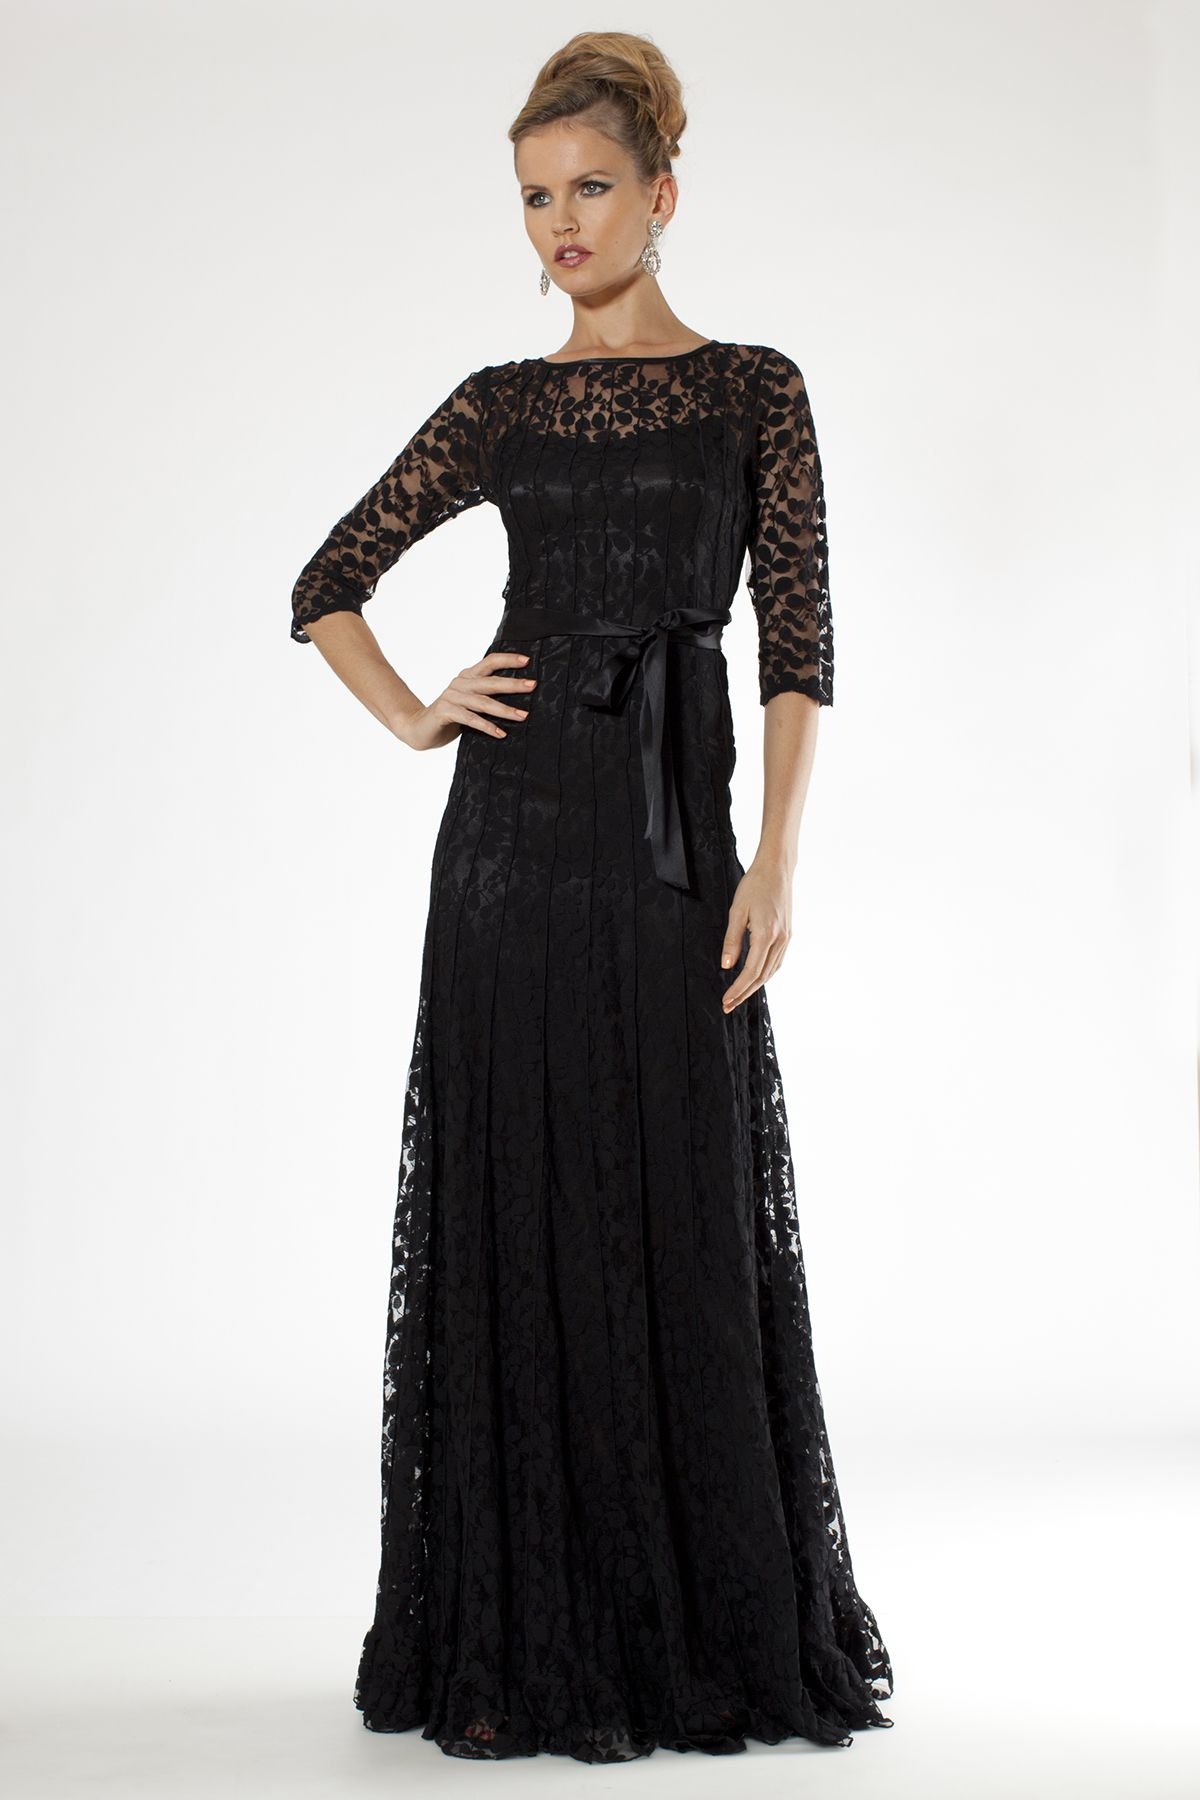 For the DVF Zarita, Black Evening Gown With Lace Overlay | Teri ...